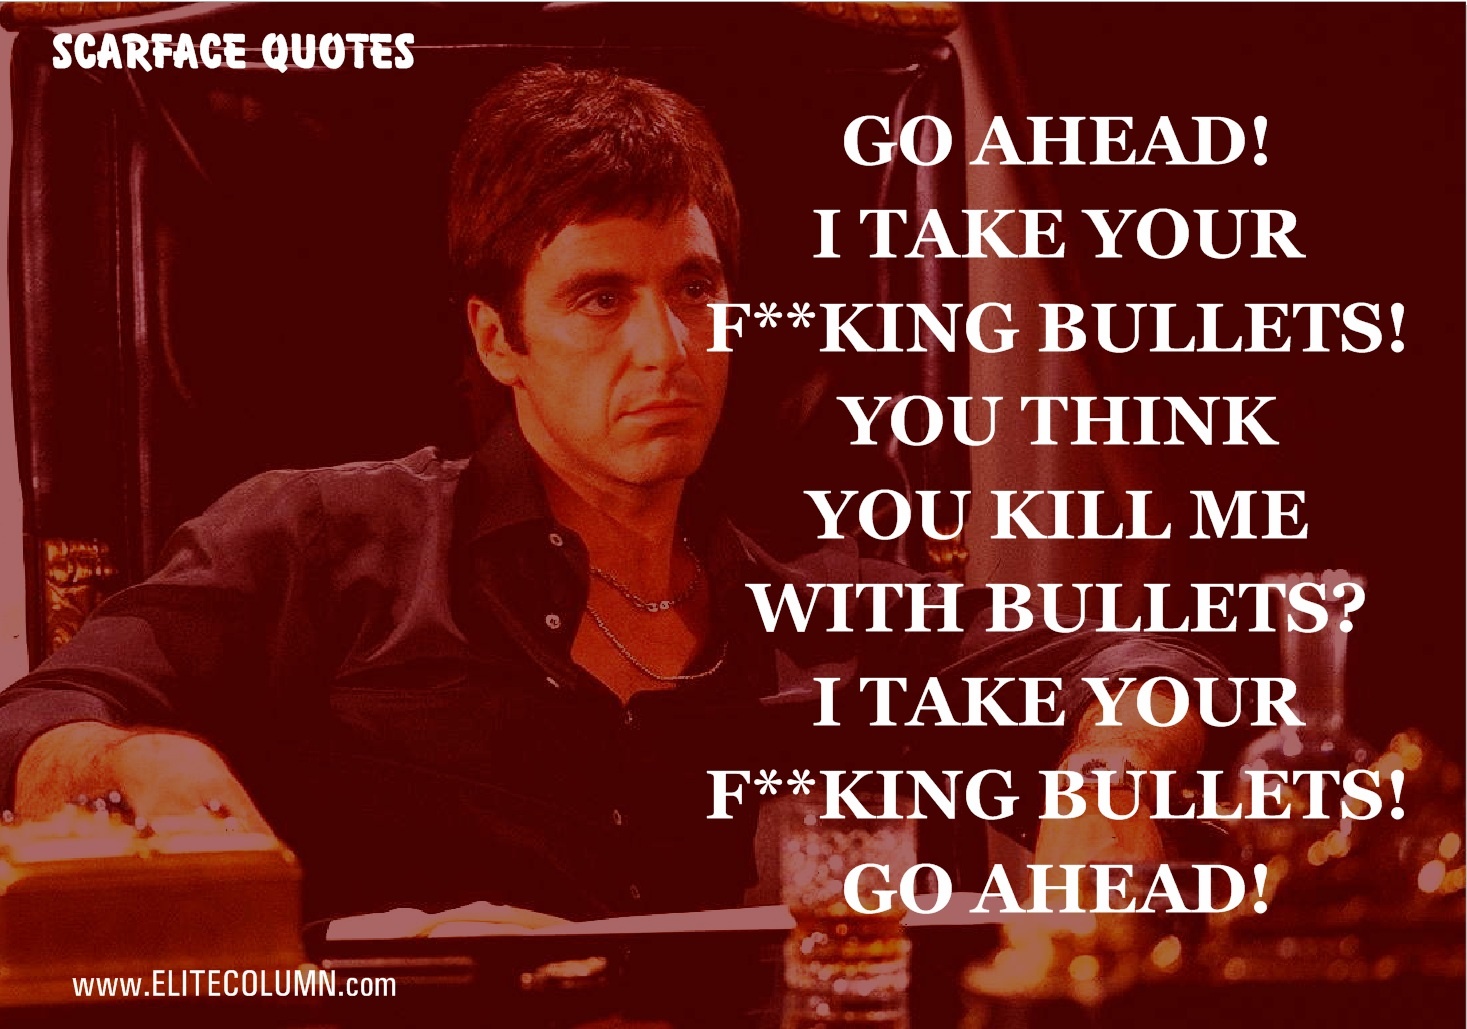 Scarface Quotes (9)